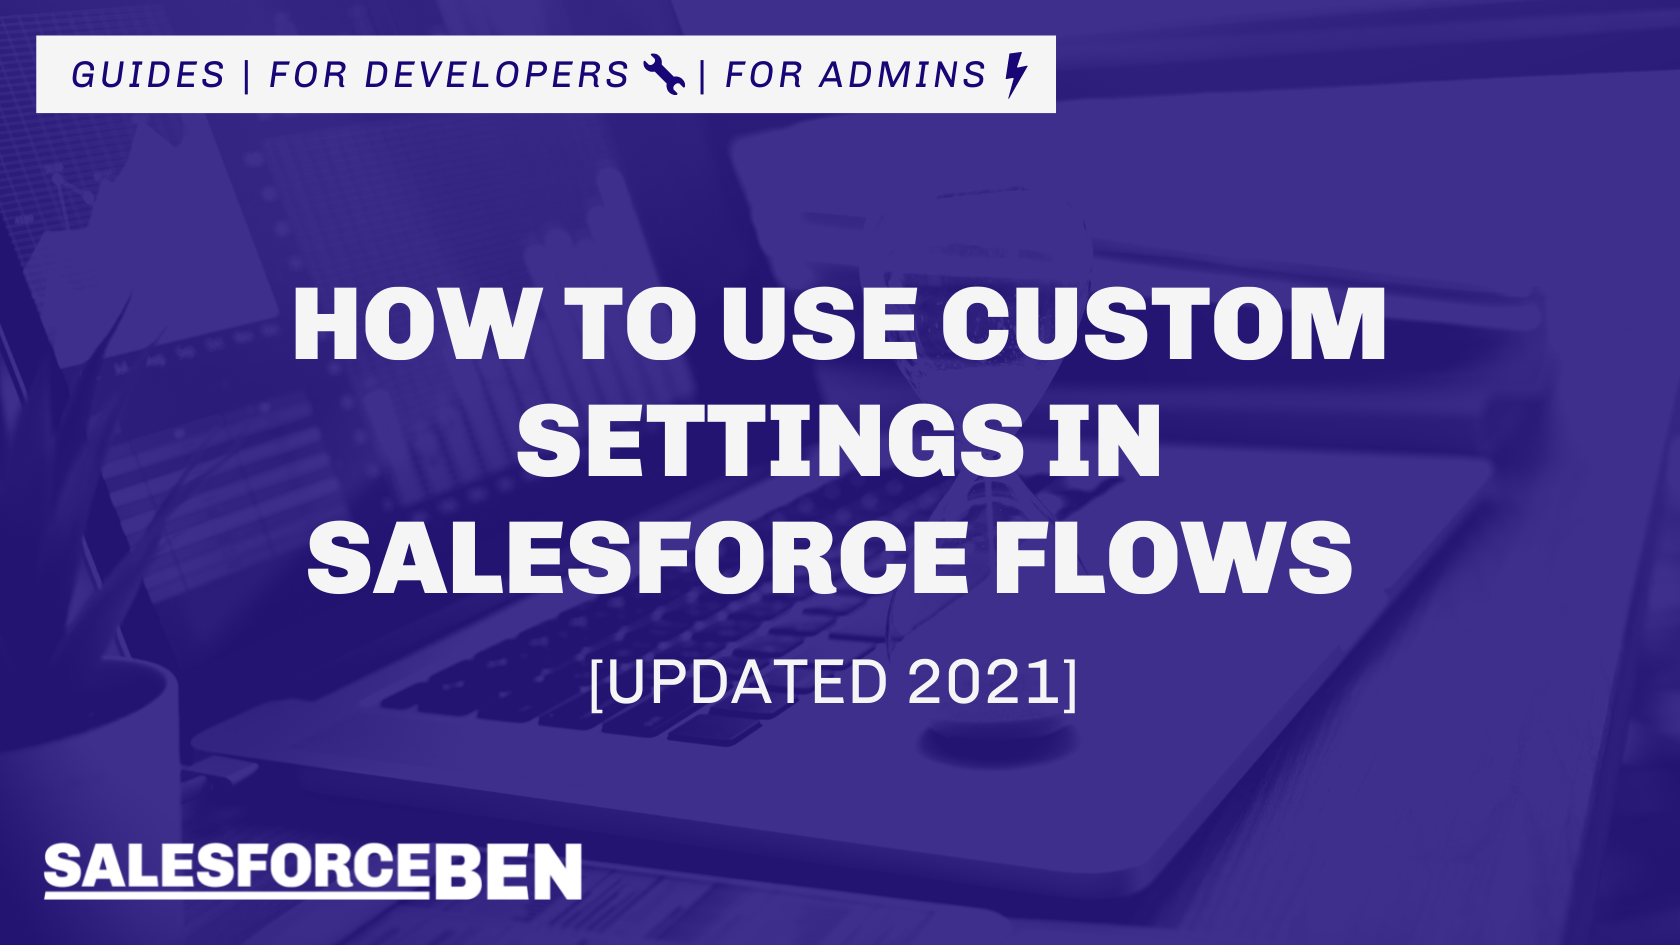 How to Use Custom Settings in Salesforce Flows [Updated 2021]